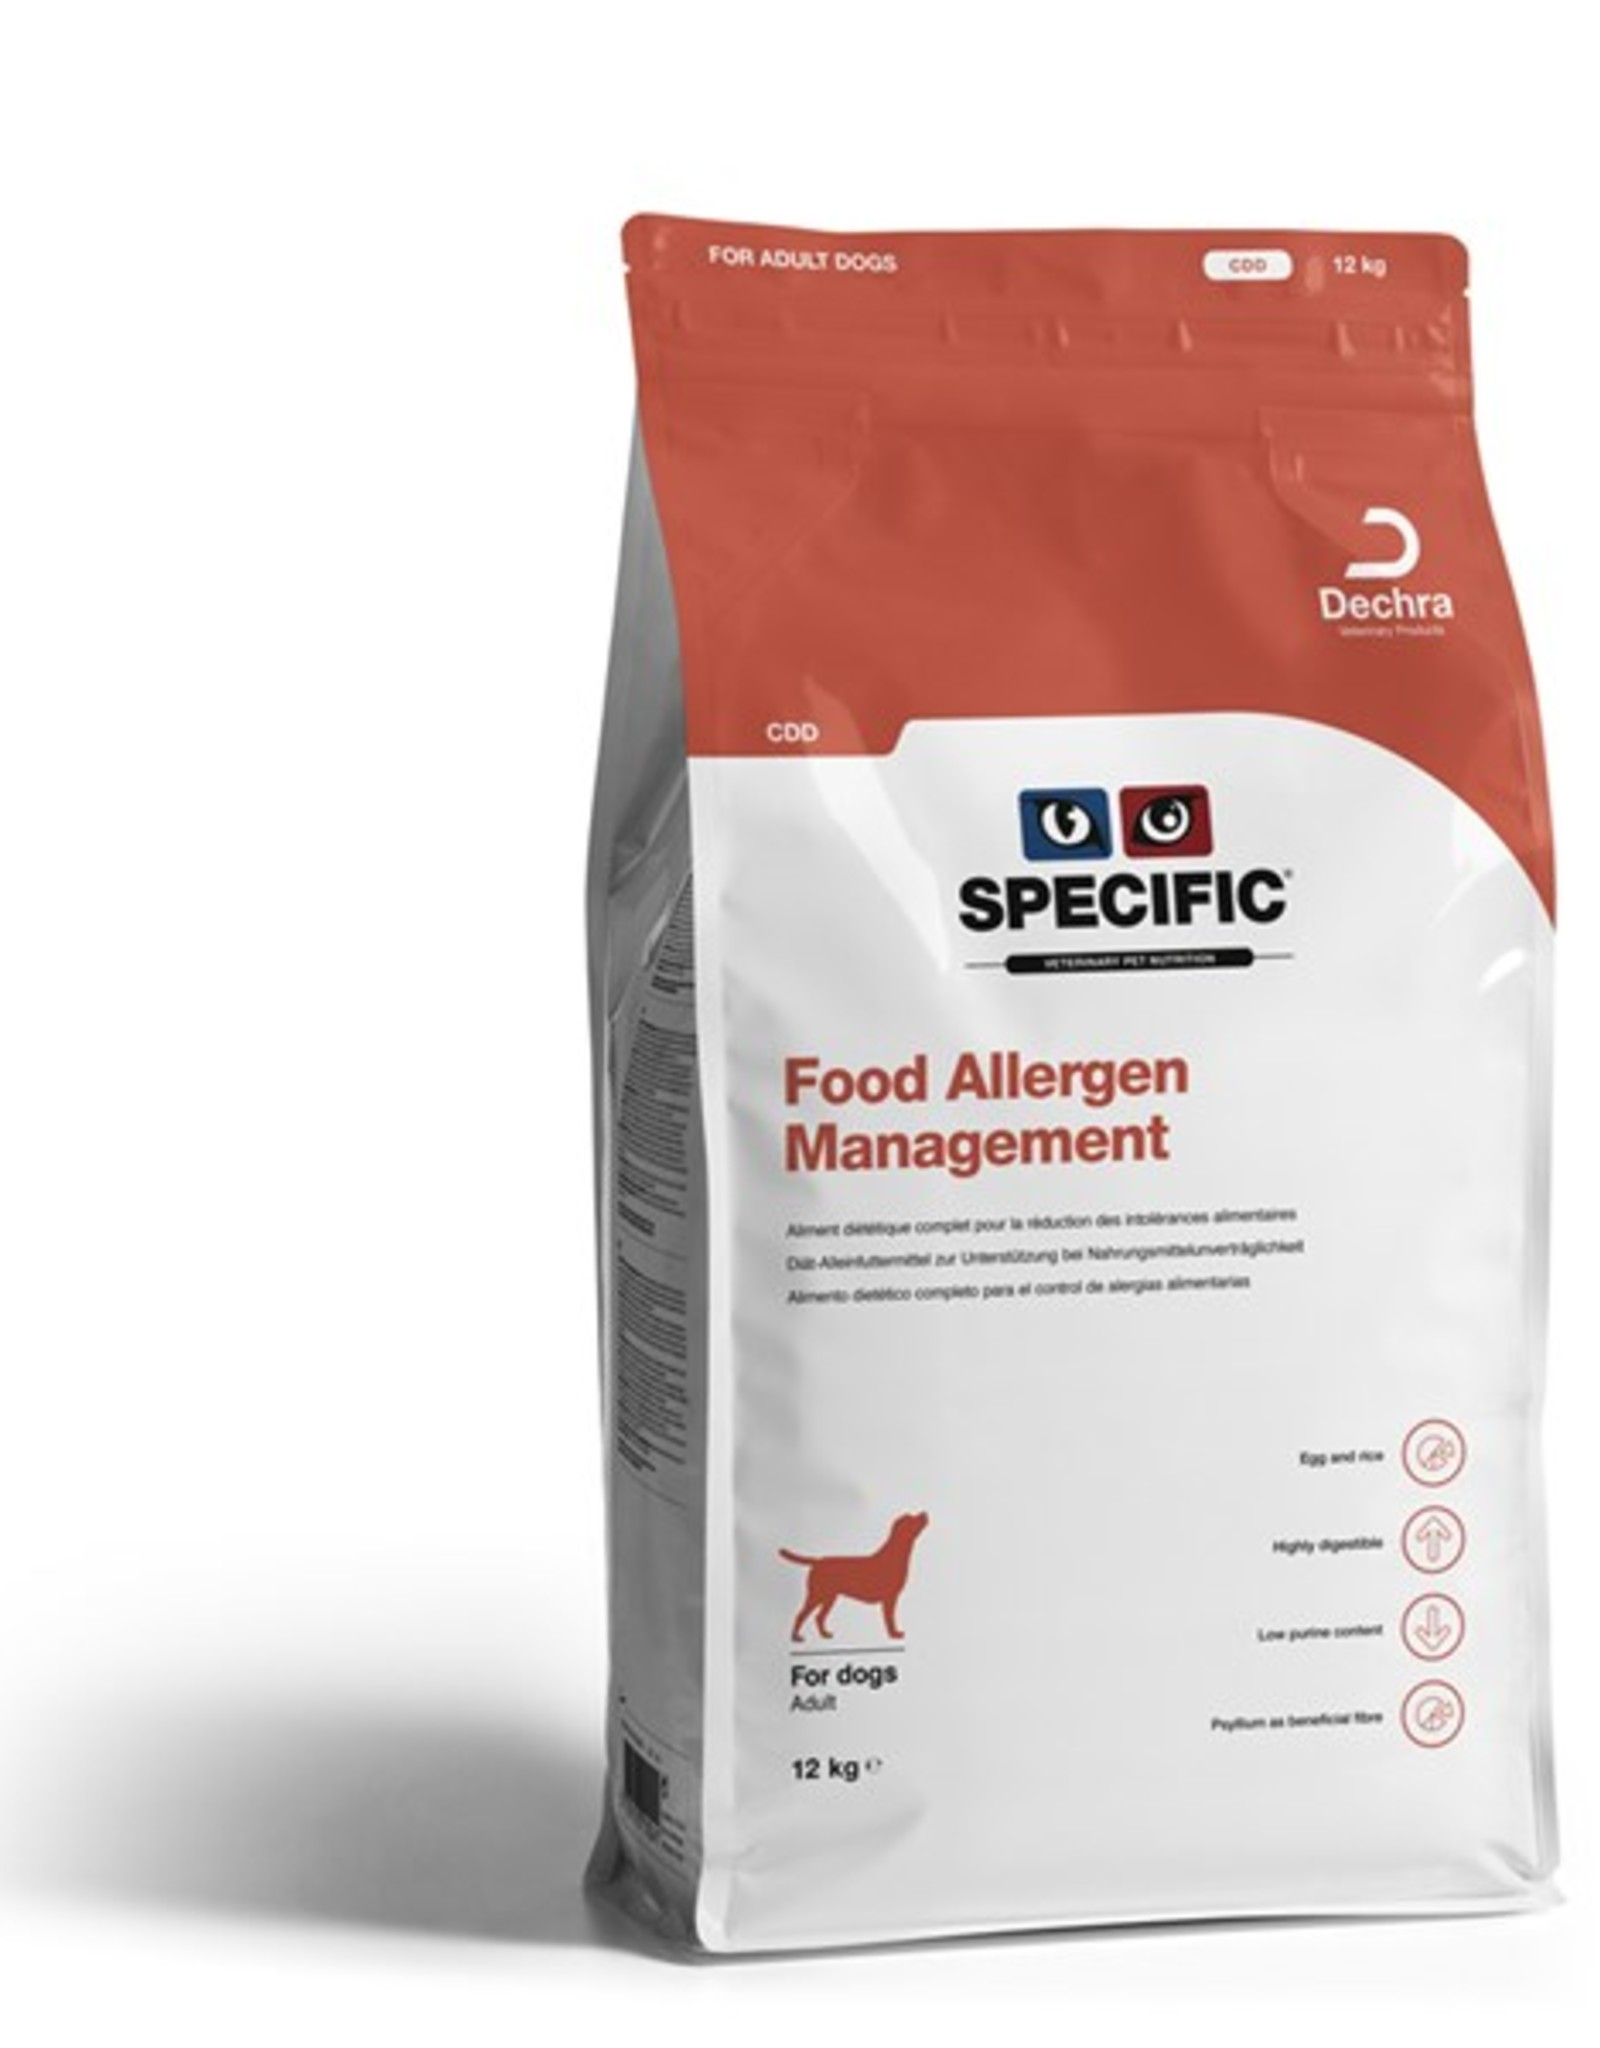 Specific Specific Cdd Food Allergy 12kg